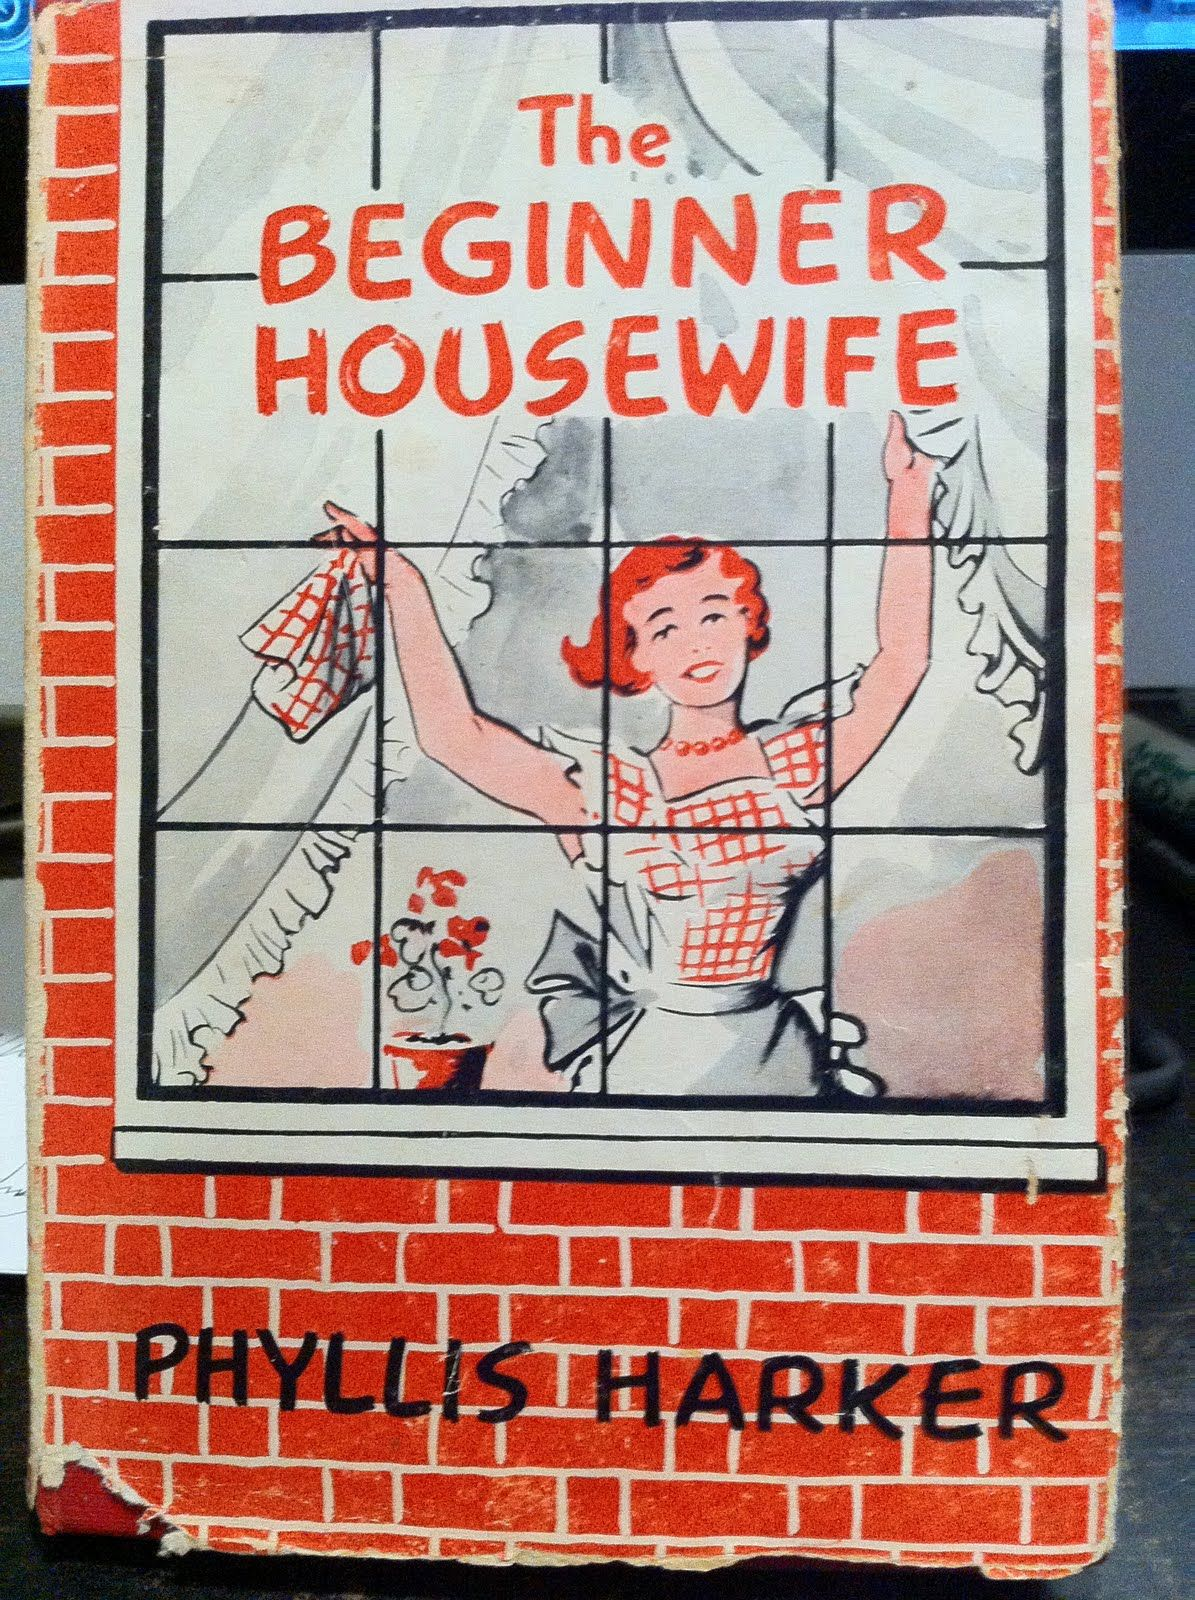 Housewives and Housework1950s stylepriceless gotta read